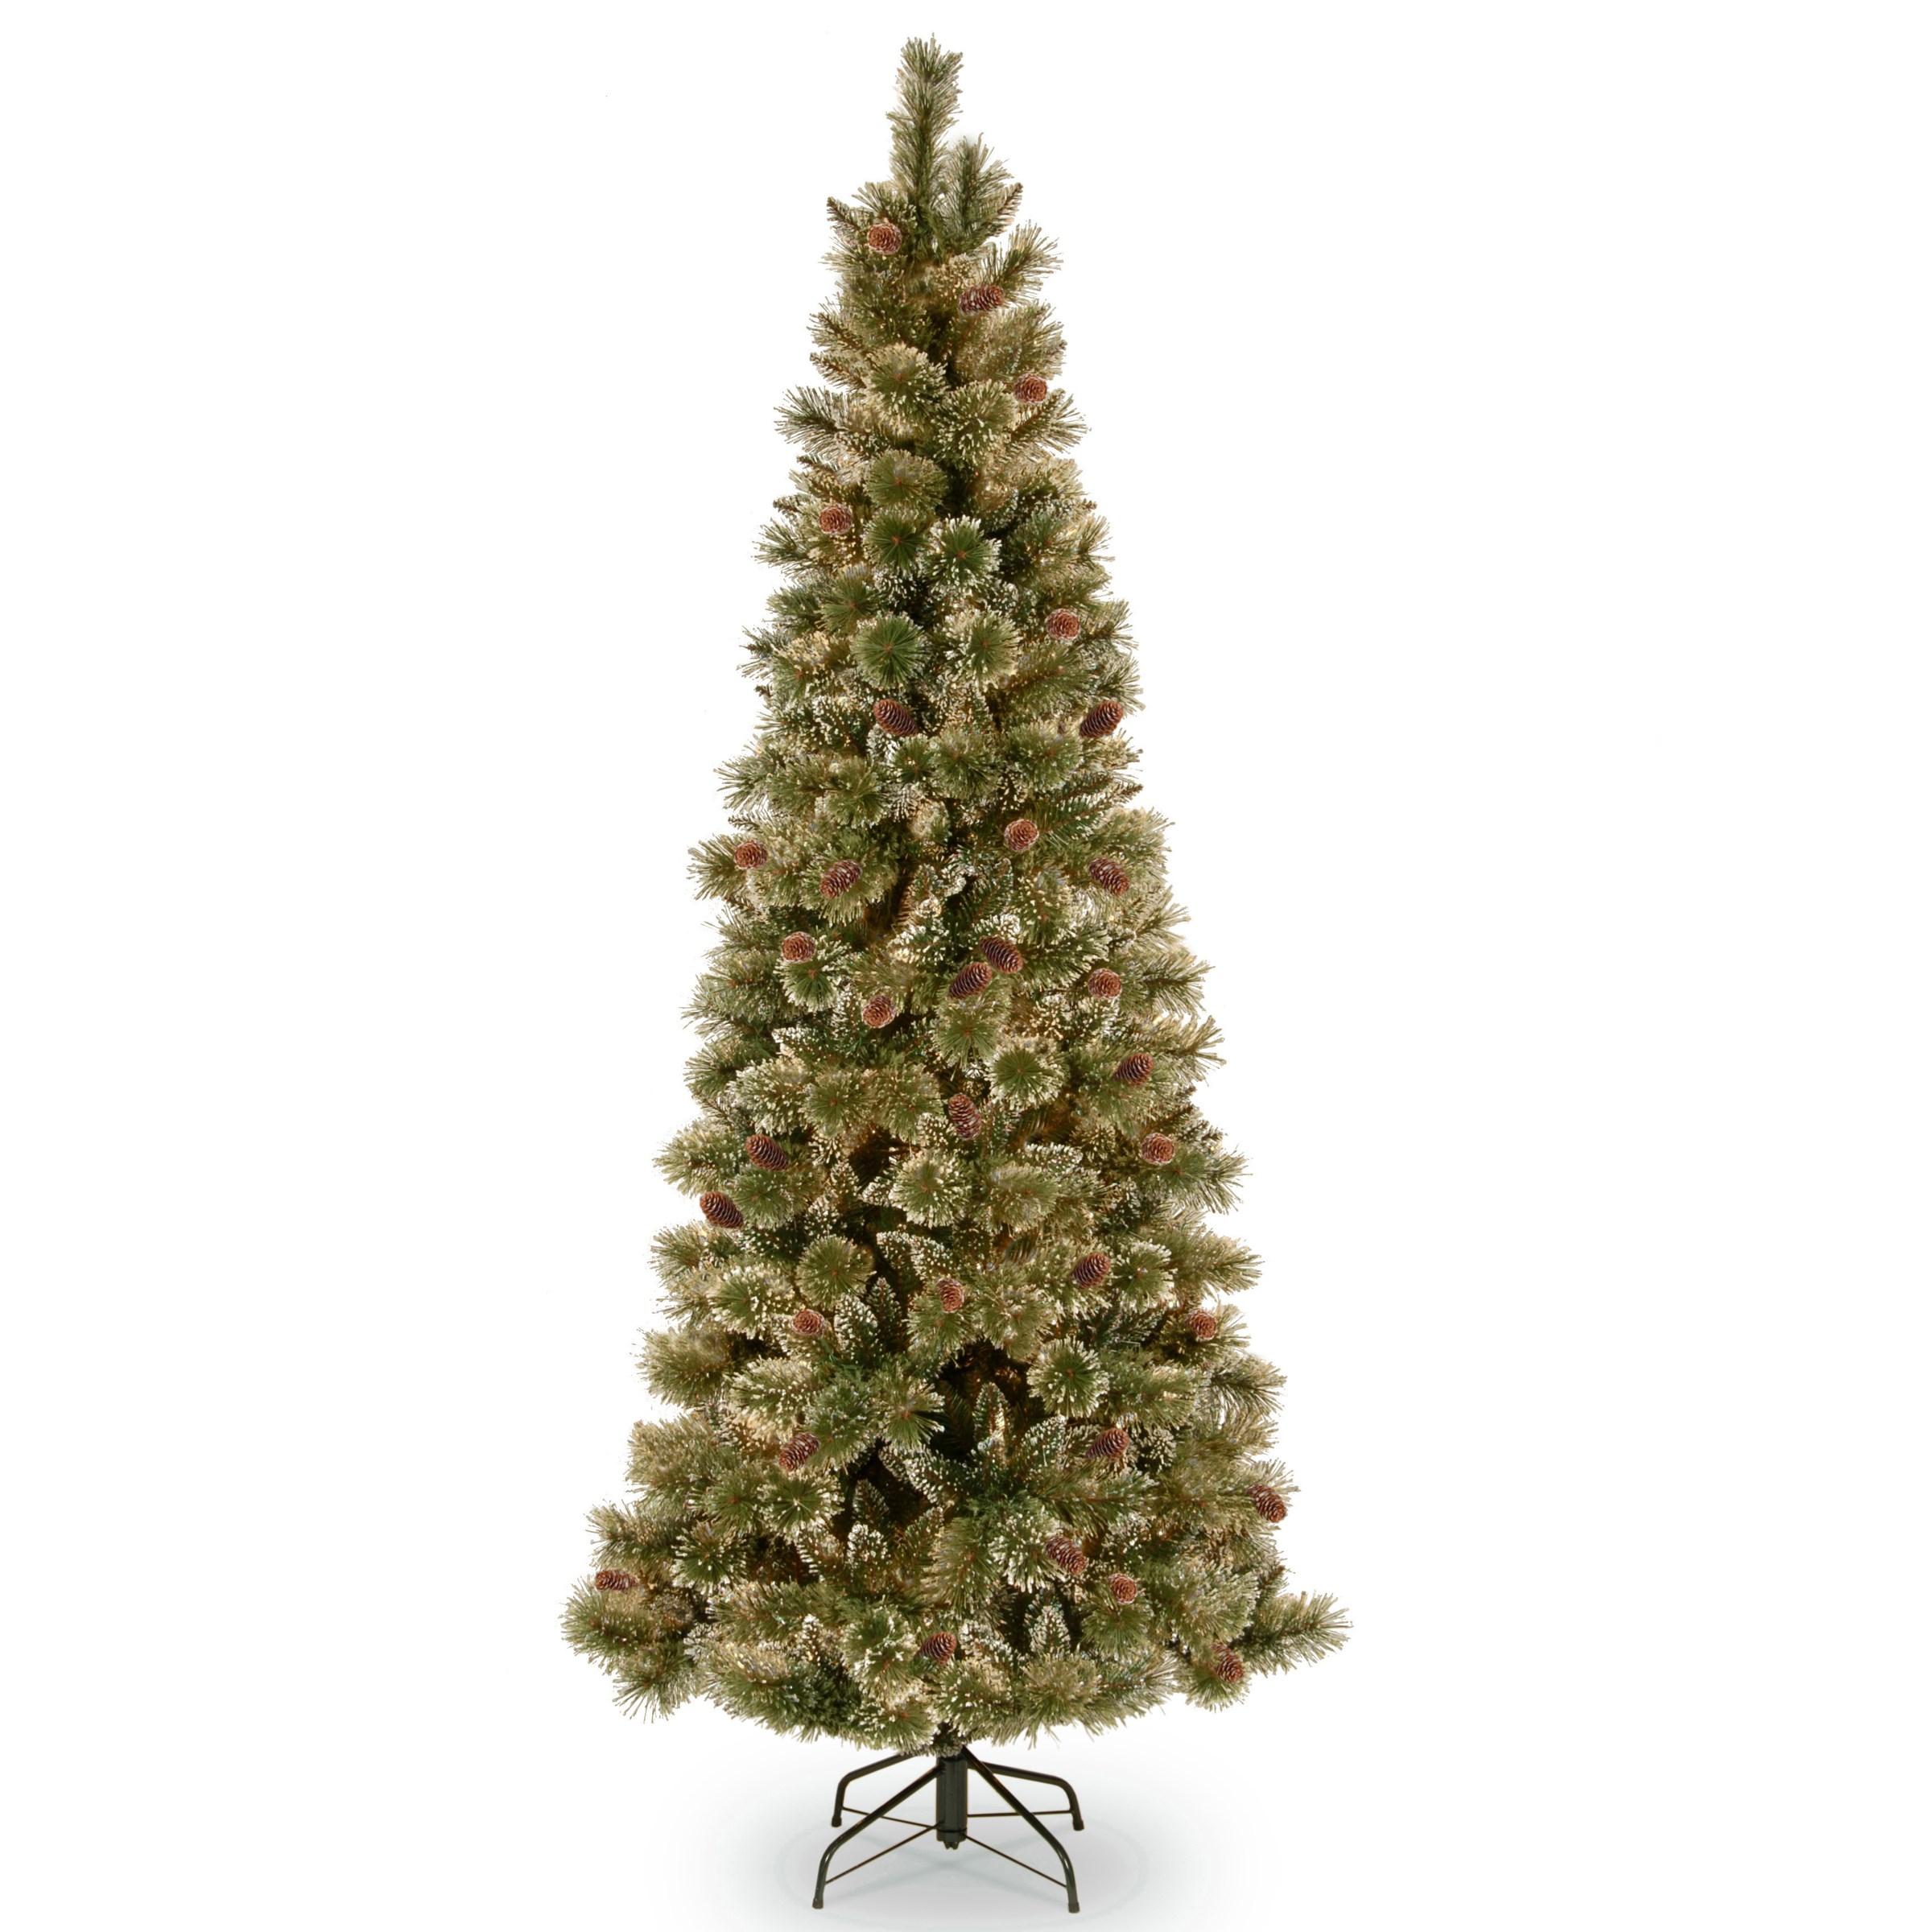 National Tree Company Glittery Bristle Pine Christmas Tree